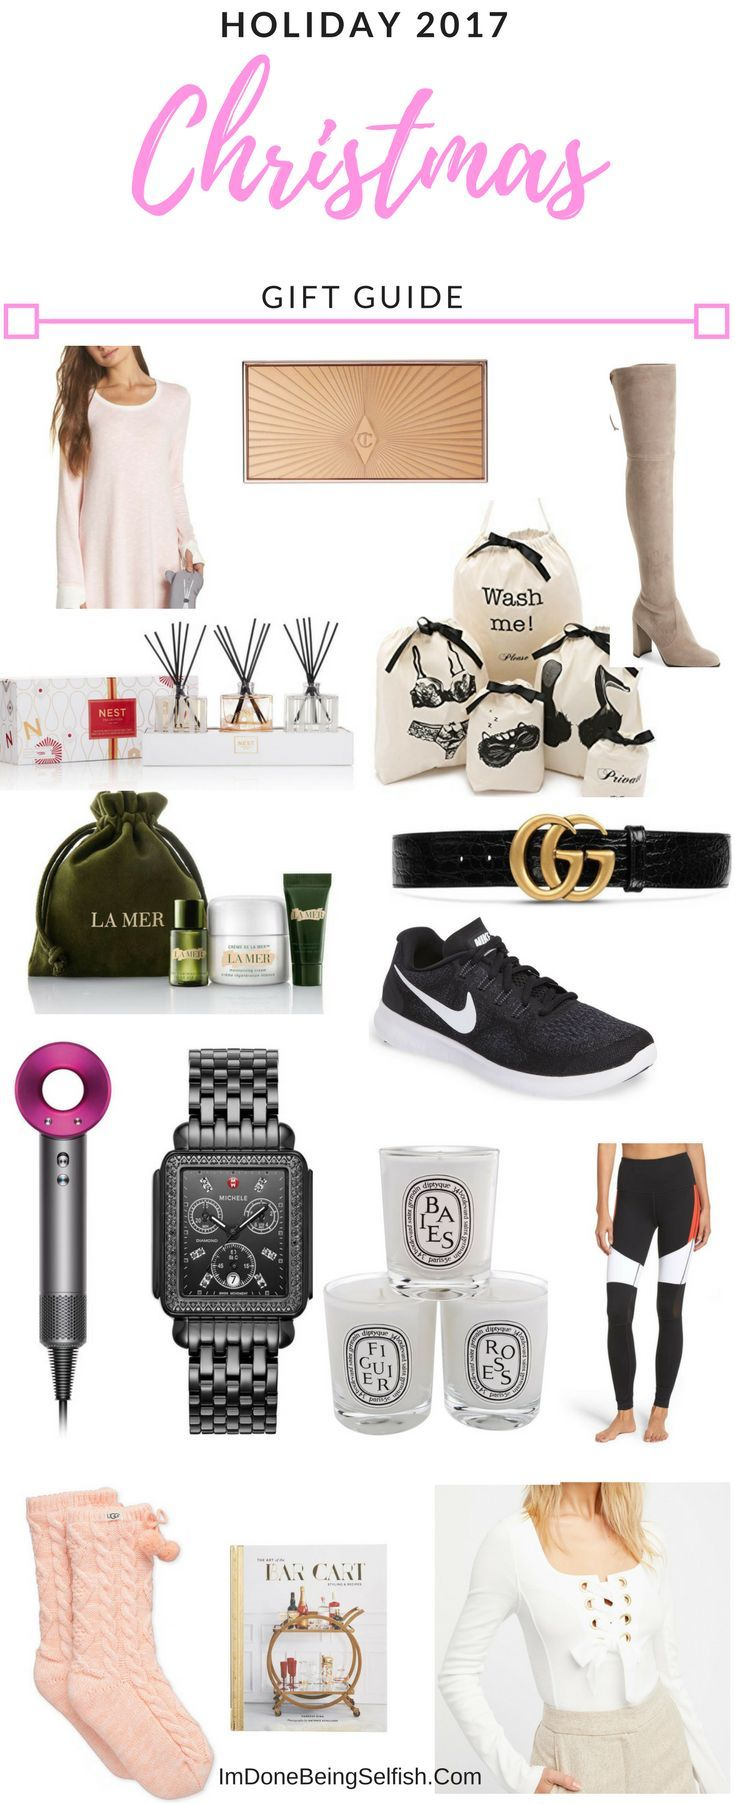 Gift Guide, gift ideas, gift guide for her, gifts for her, Christmas 2017 gifts, gifts, gift guide for her, holiday 2017, best 2017 gifts, budget gifts, best budget gifts, best gifts, holiday 2017 best gifts, best gifts for her, Christmas 2017 gift guide,